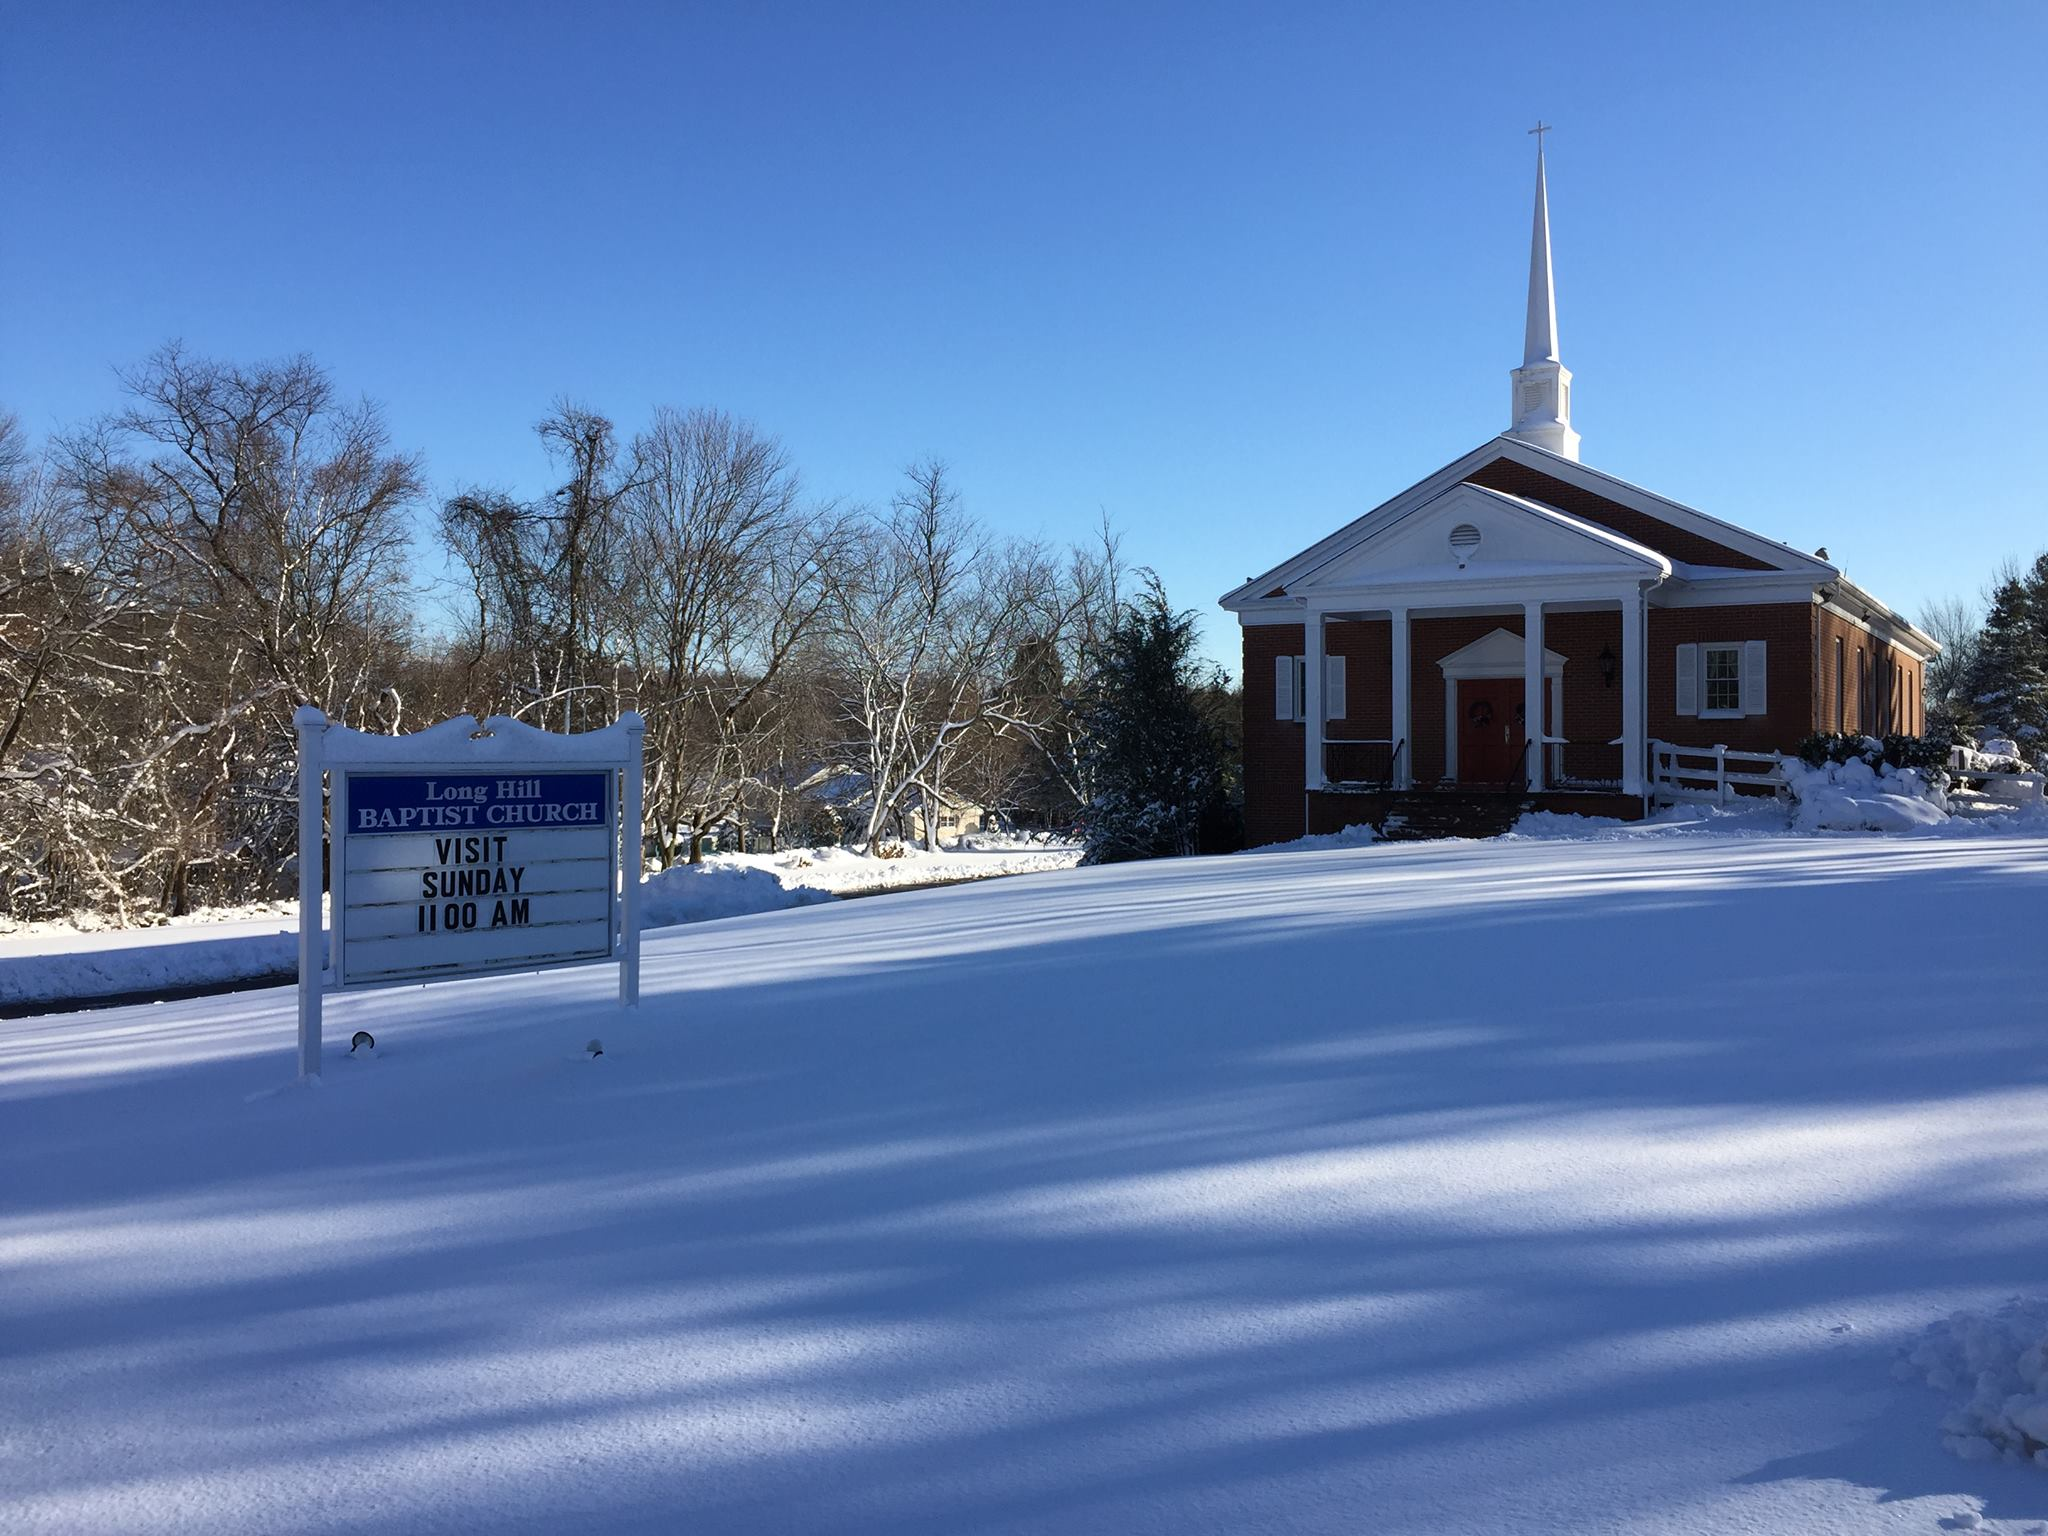 It's a beautiful day at Long Hill Baptist Church!